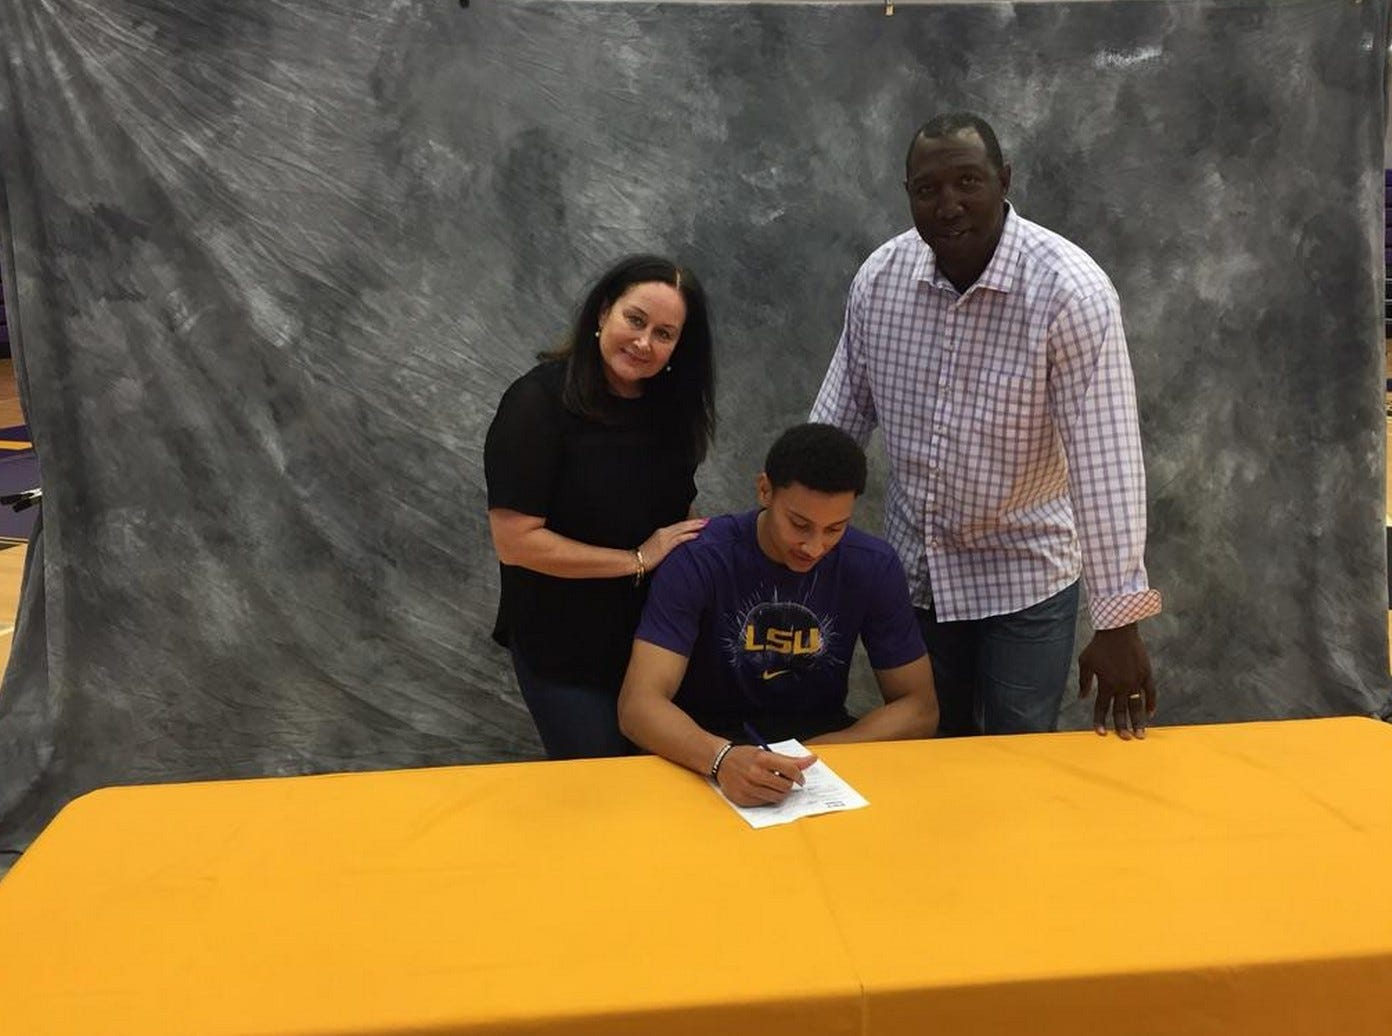 Ben Simmons signs his NLI to LSU